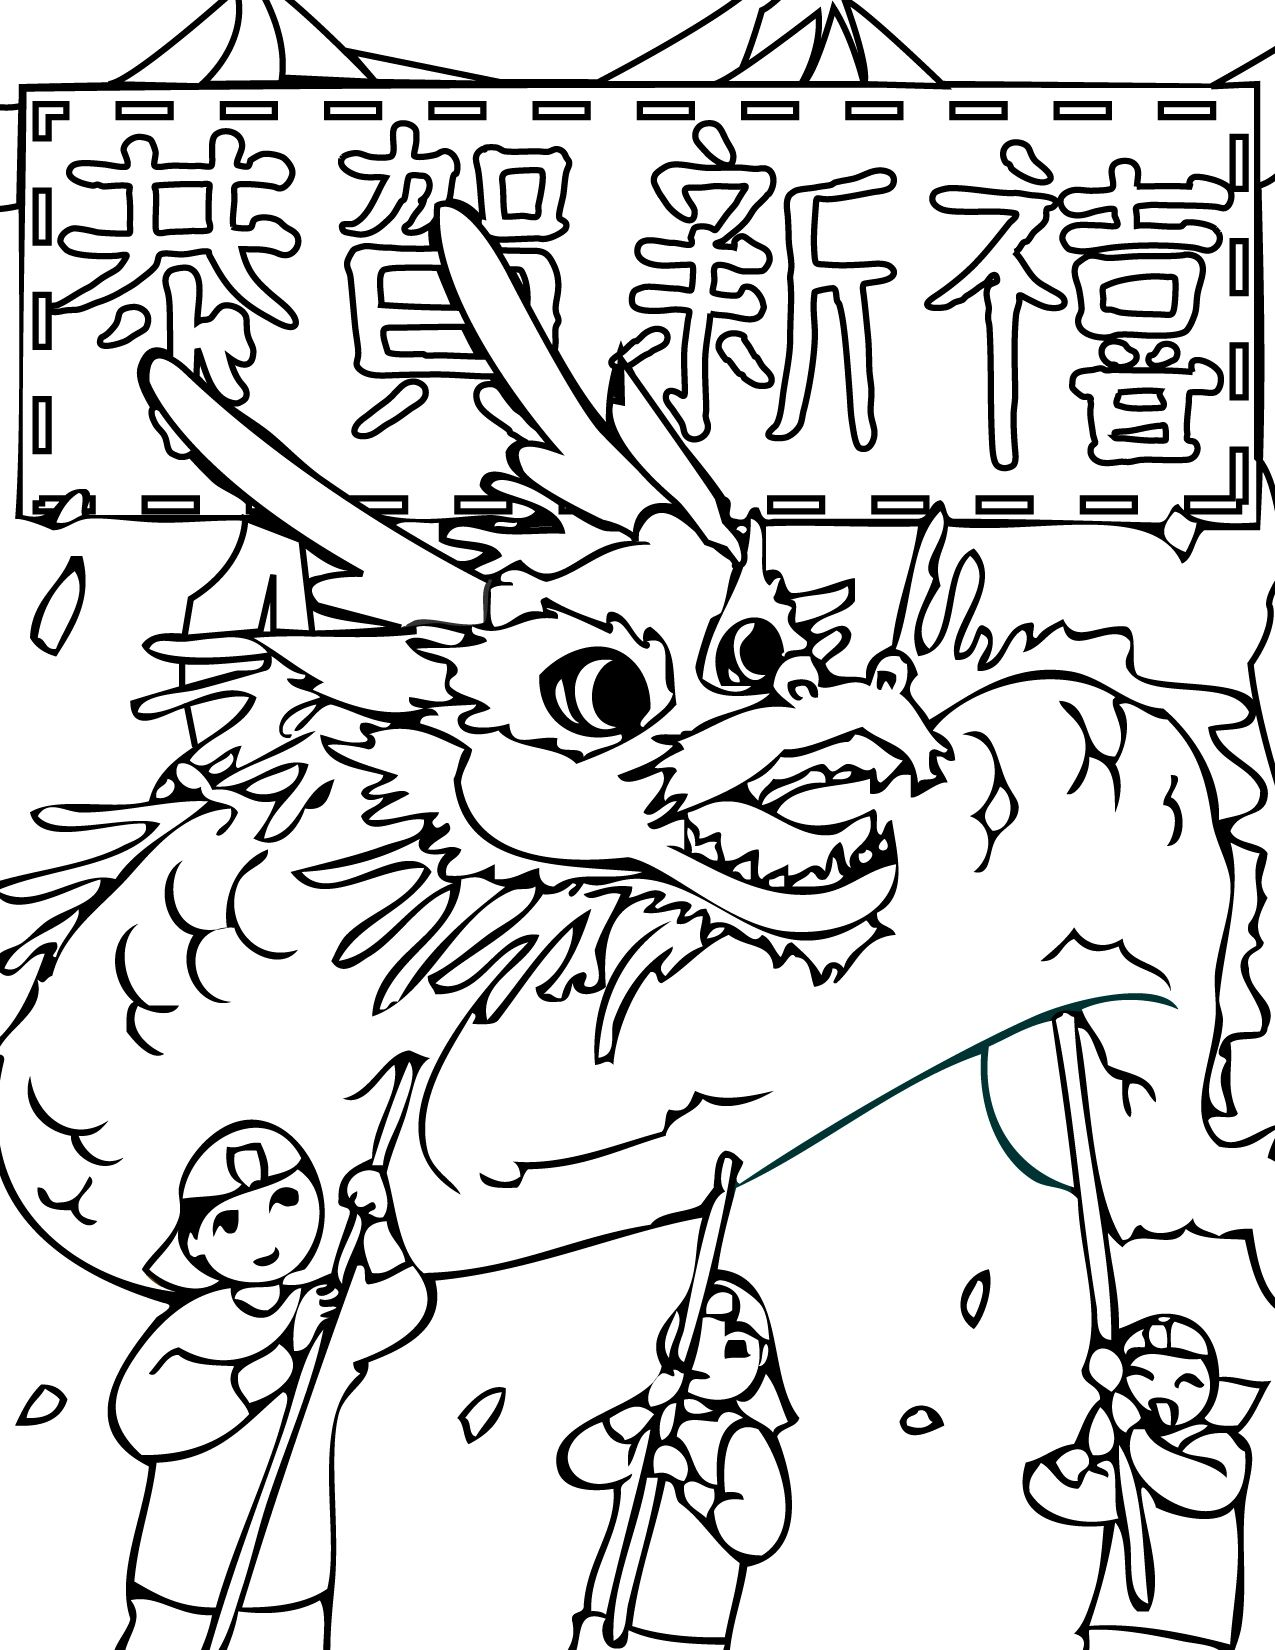 Colouring sheets chinese new year 2017 - Chinese New Year Coloring